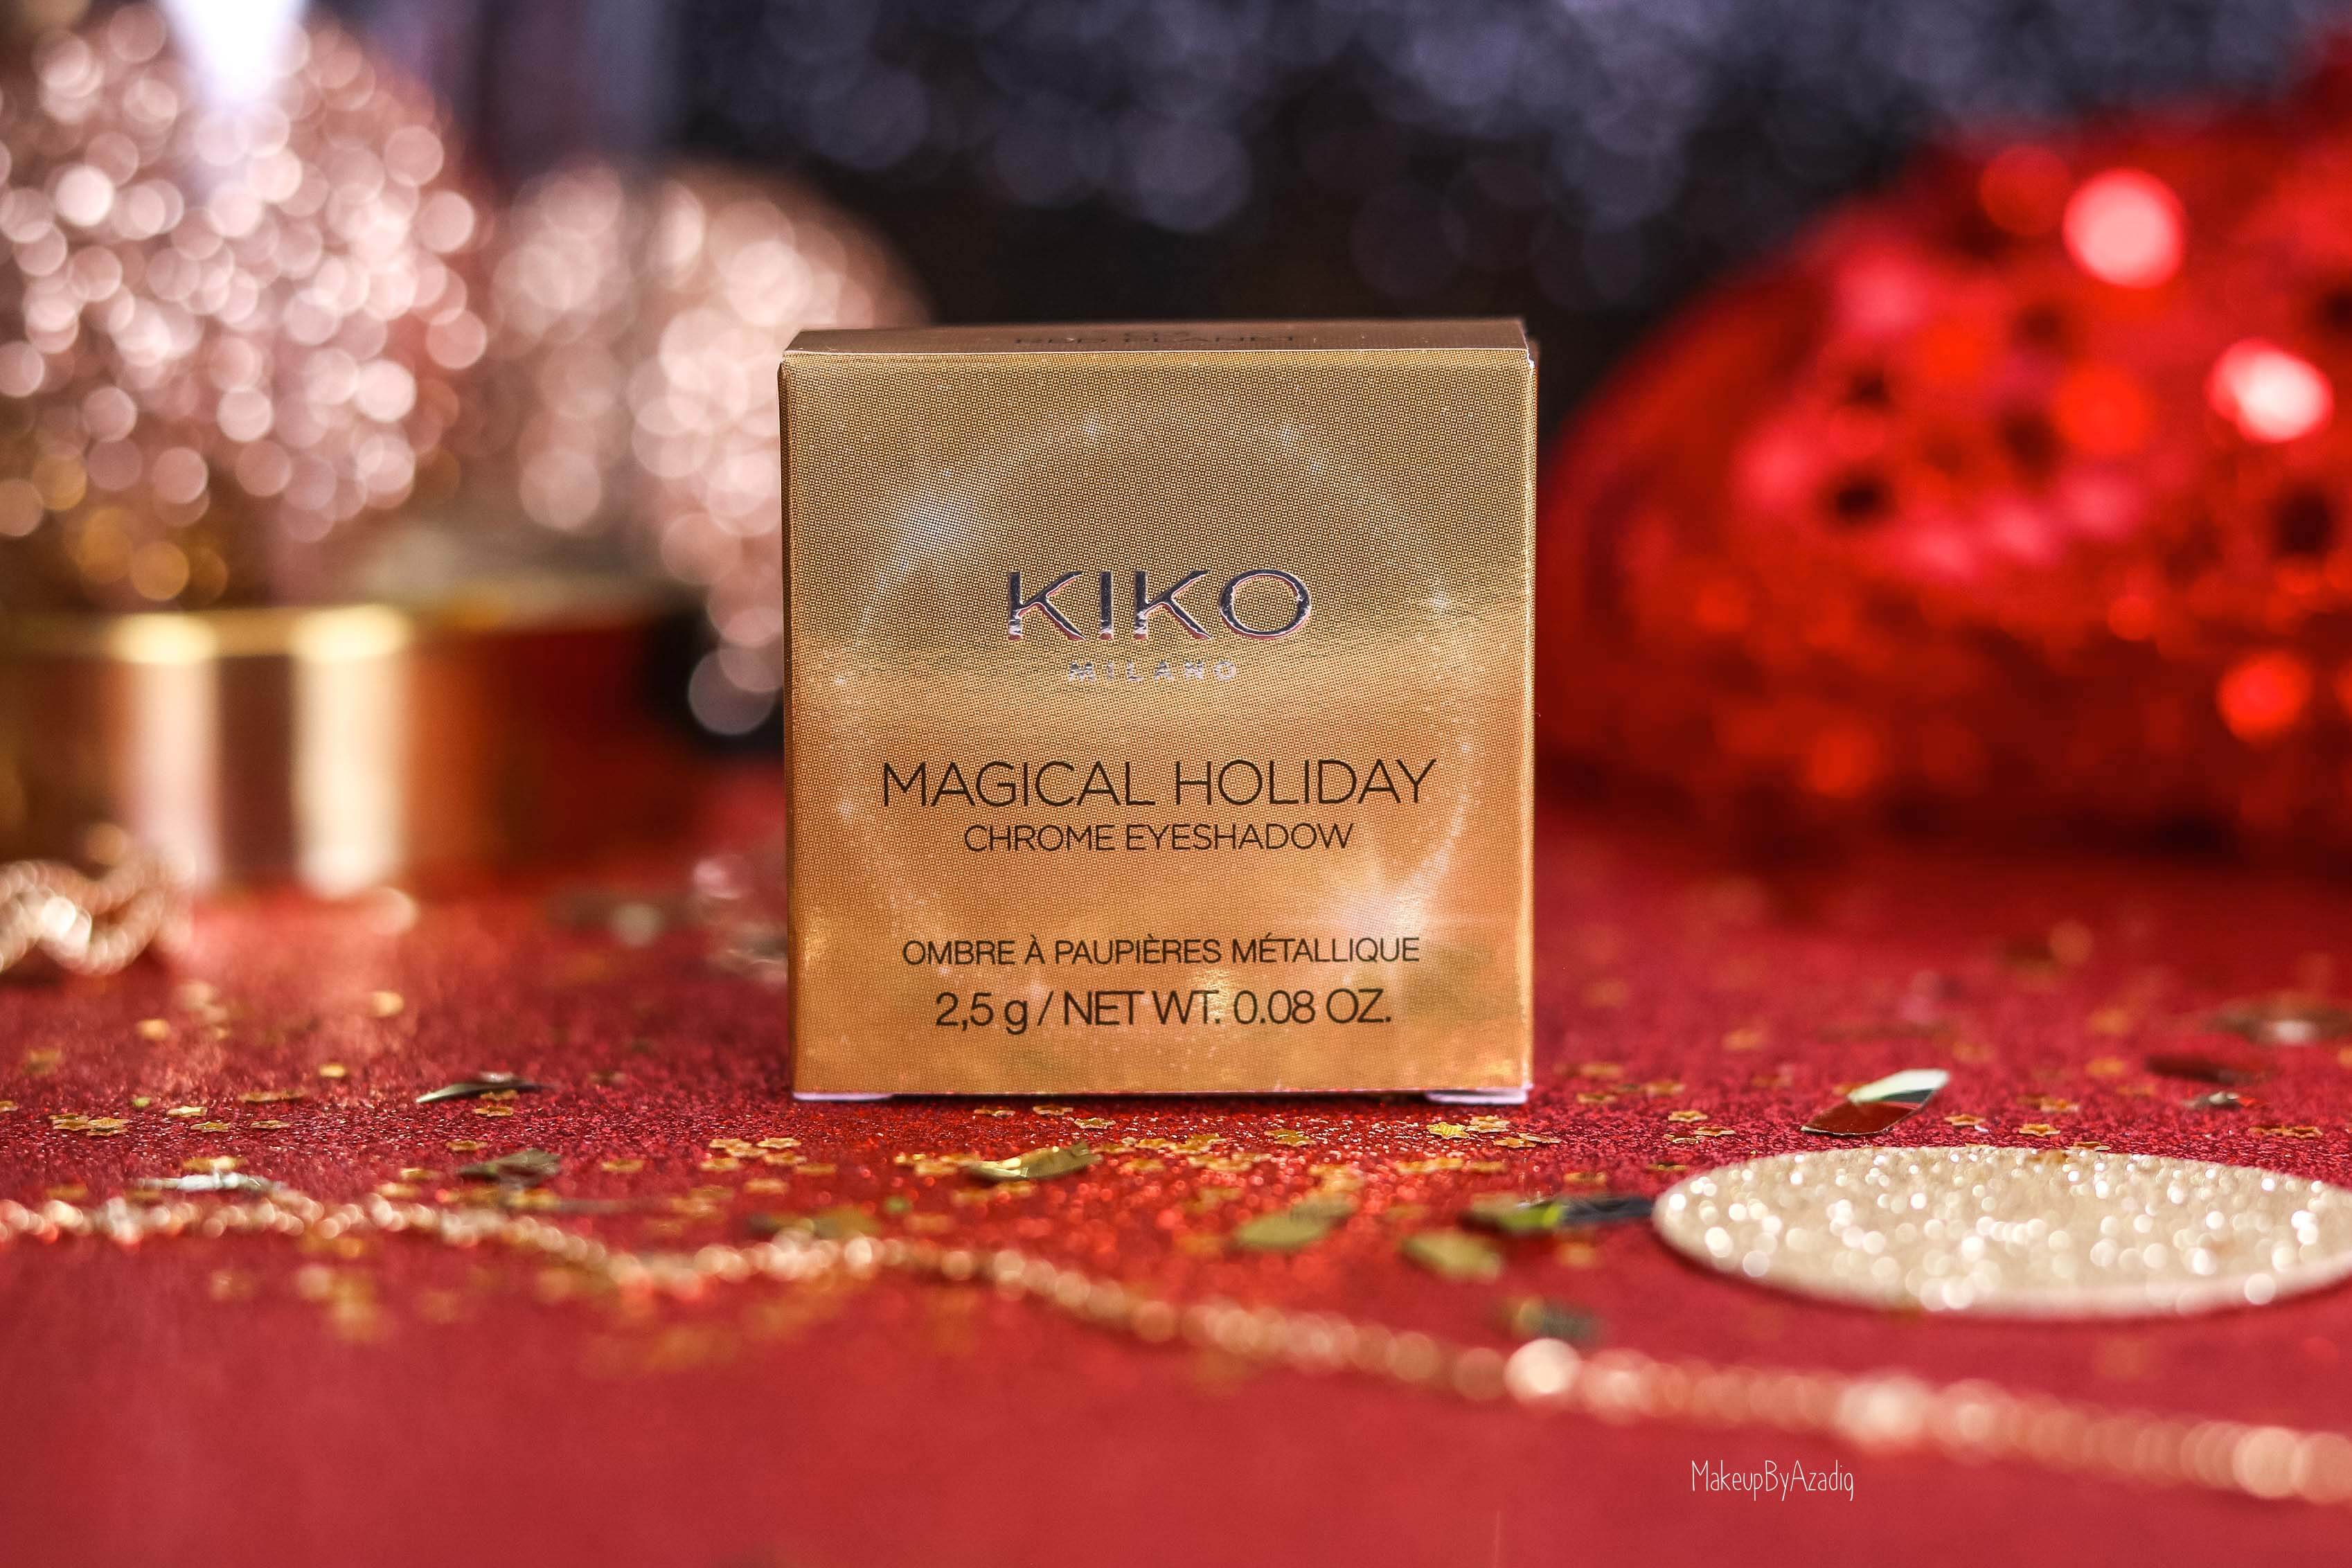 revue-collection-noel-kiko-milano-troyes-magical-holiday-rouge-levres-fard-paupieres-makeupbyazadig-avis-prix-swatch-paillete-2019-chrome